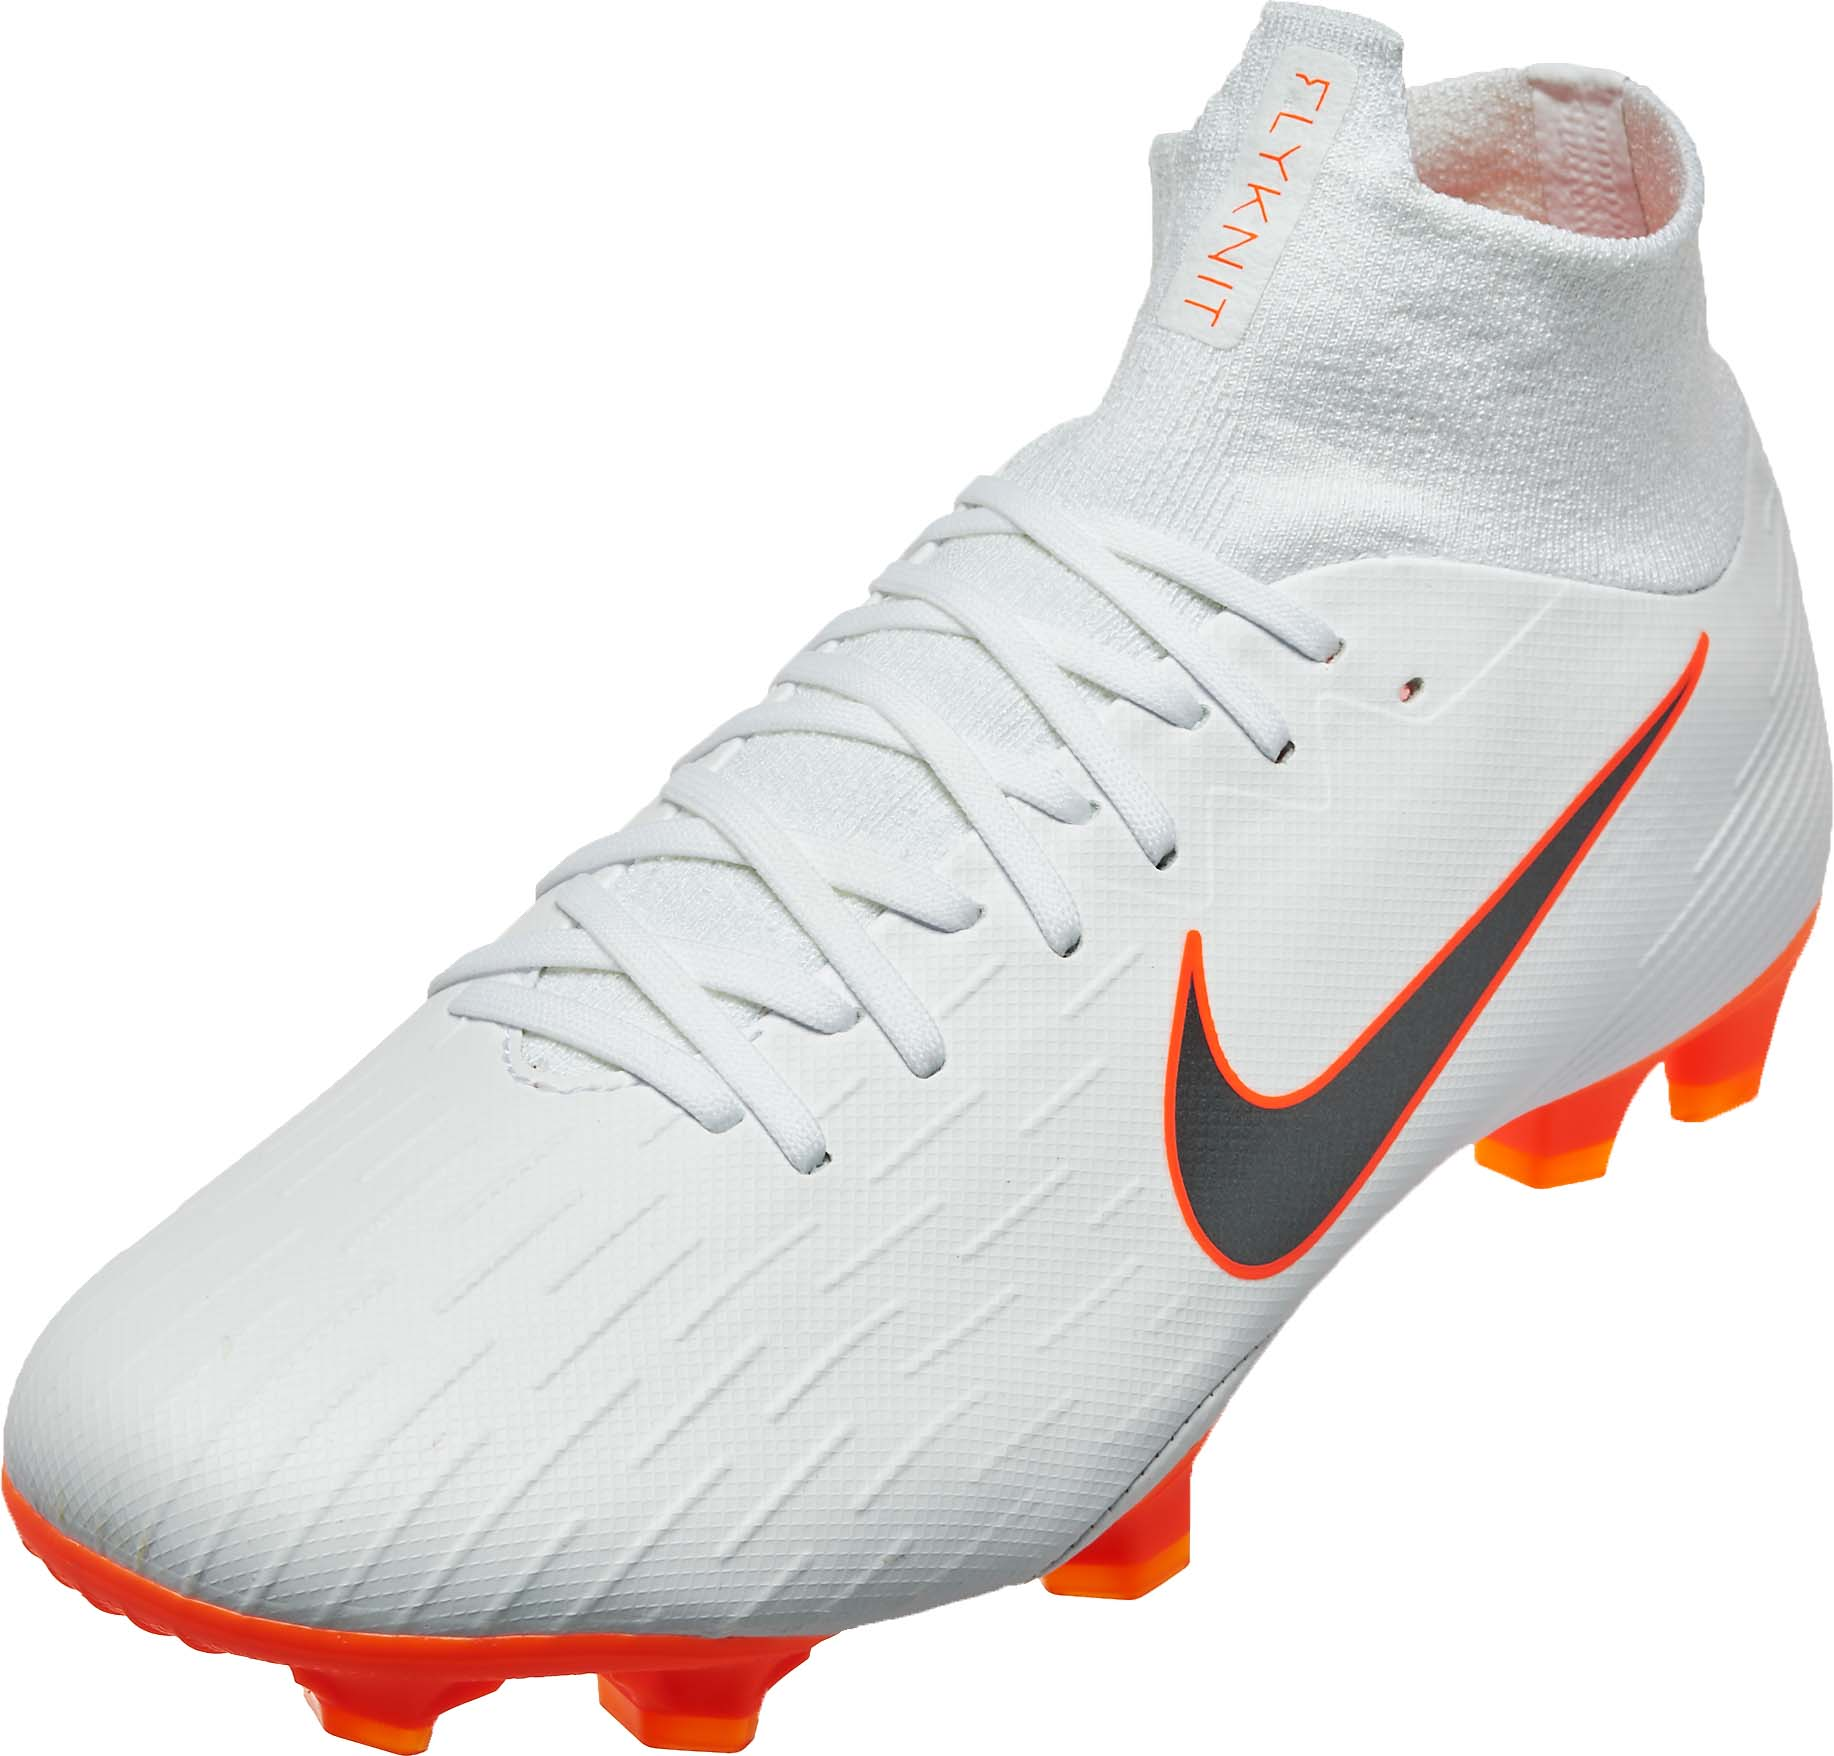 buy popular f817d d6422 Nike Mercurial Superfly 6 Pro FG – White  Metallic Cool Grey